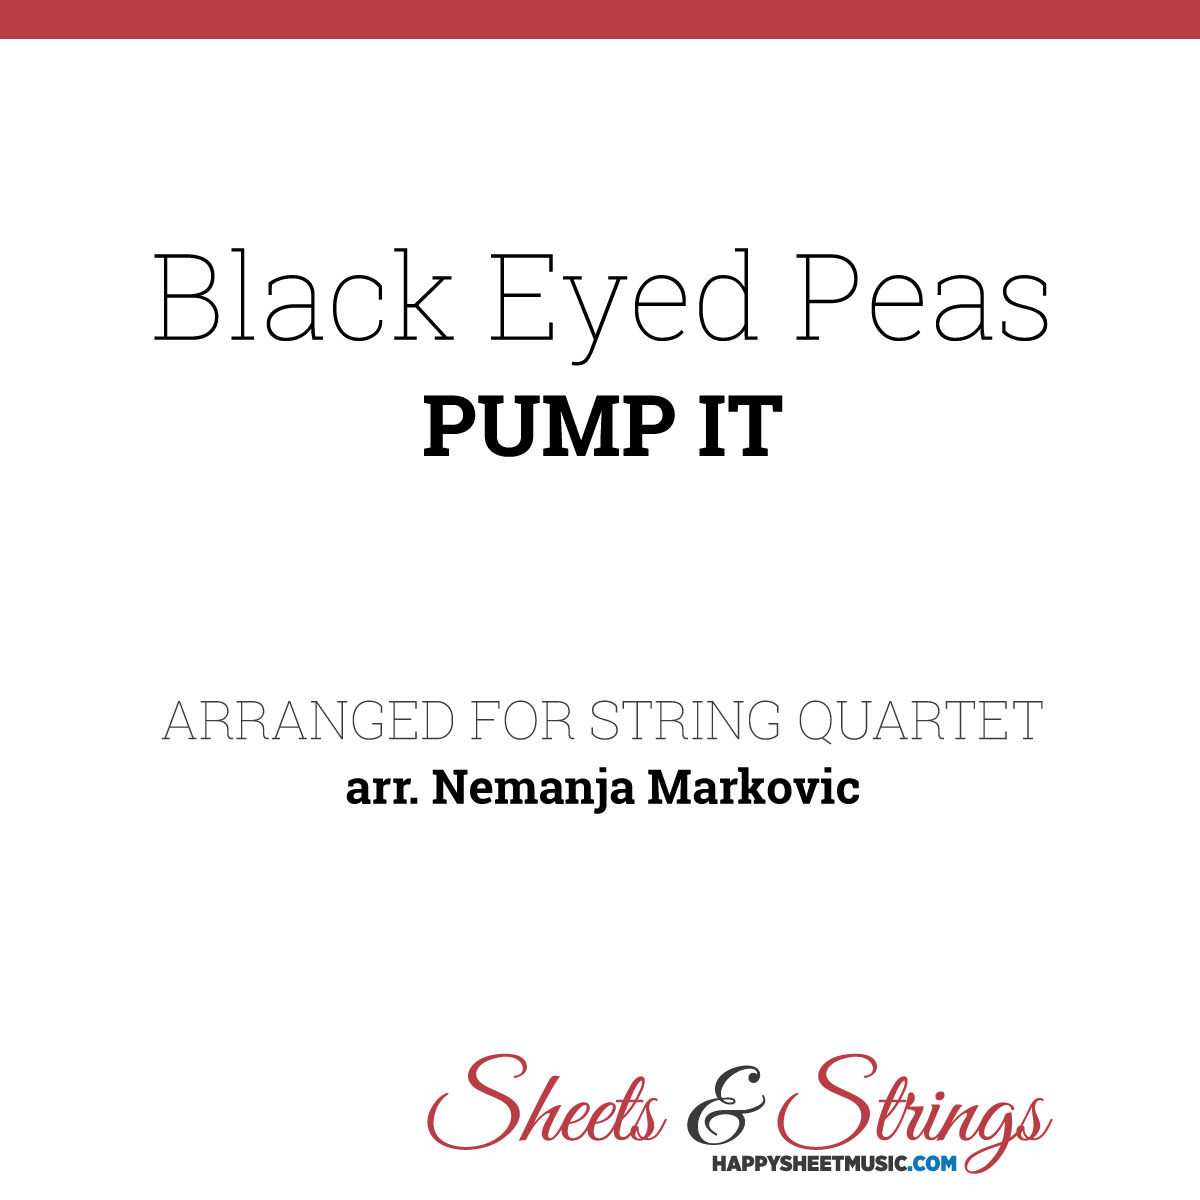 The Black Eyed Peas - Pump it Sheet Music for String Quartet - Music Arrangement for String Quartet